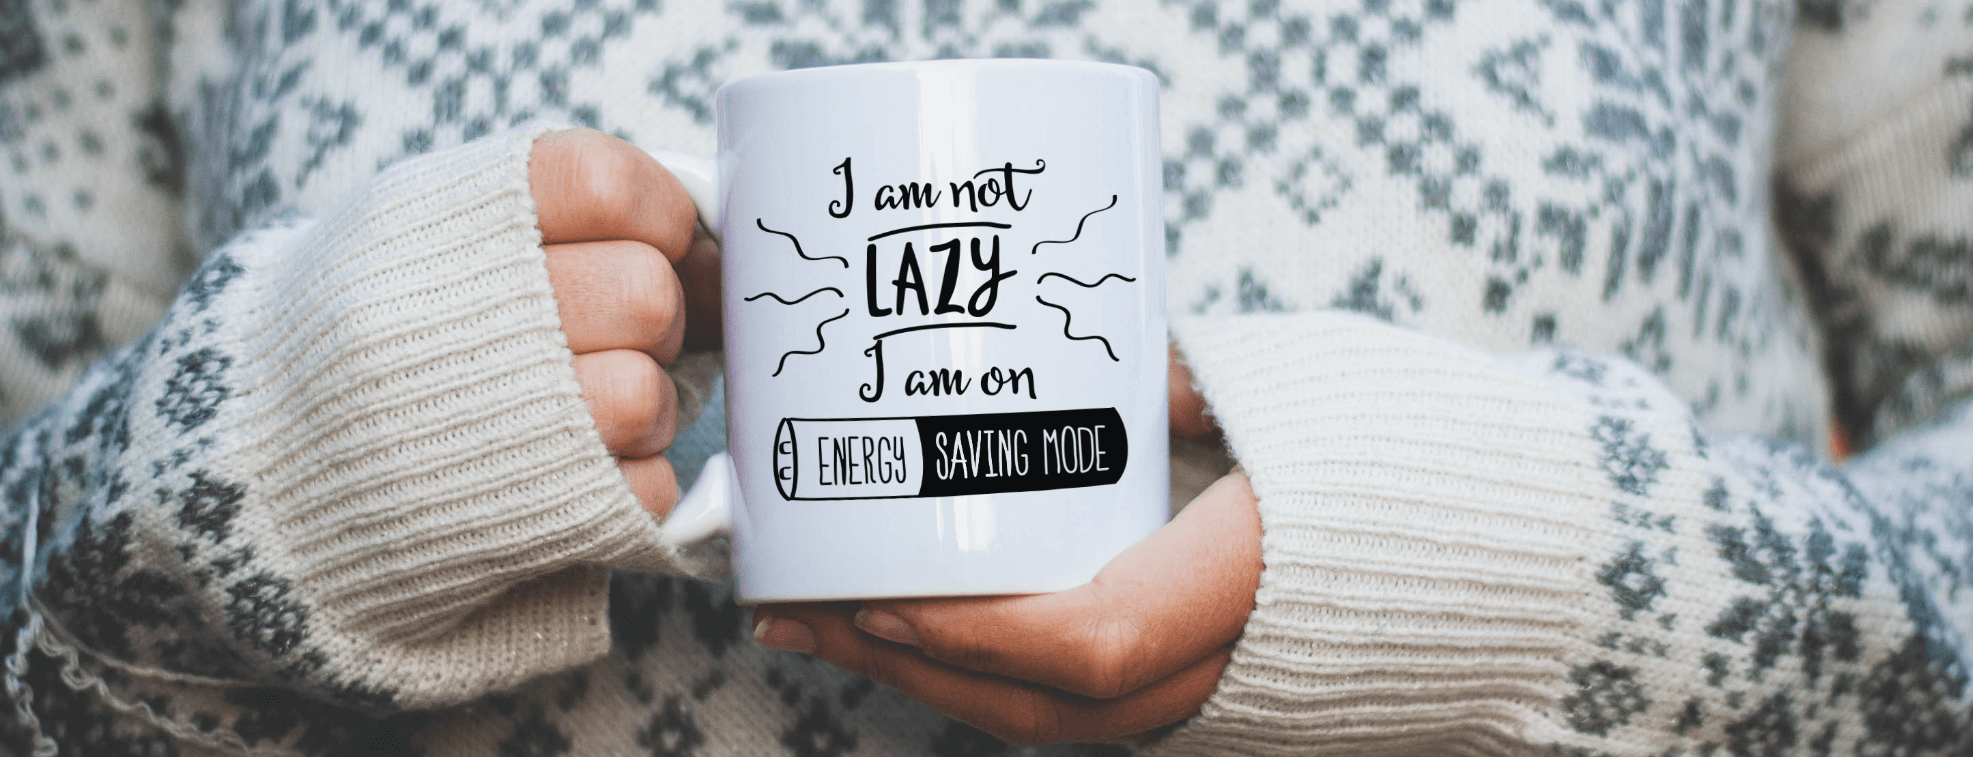 A girl in a cozy sweater holding a mug with 'I am not lazy I am on energy saving mode' written on it